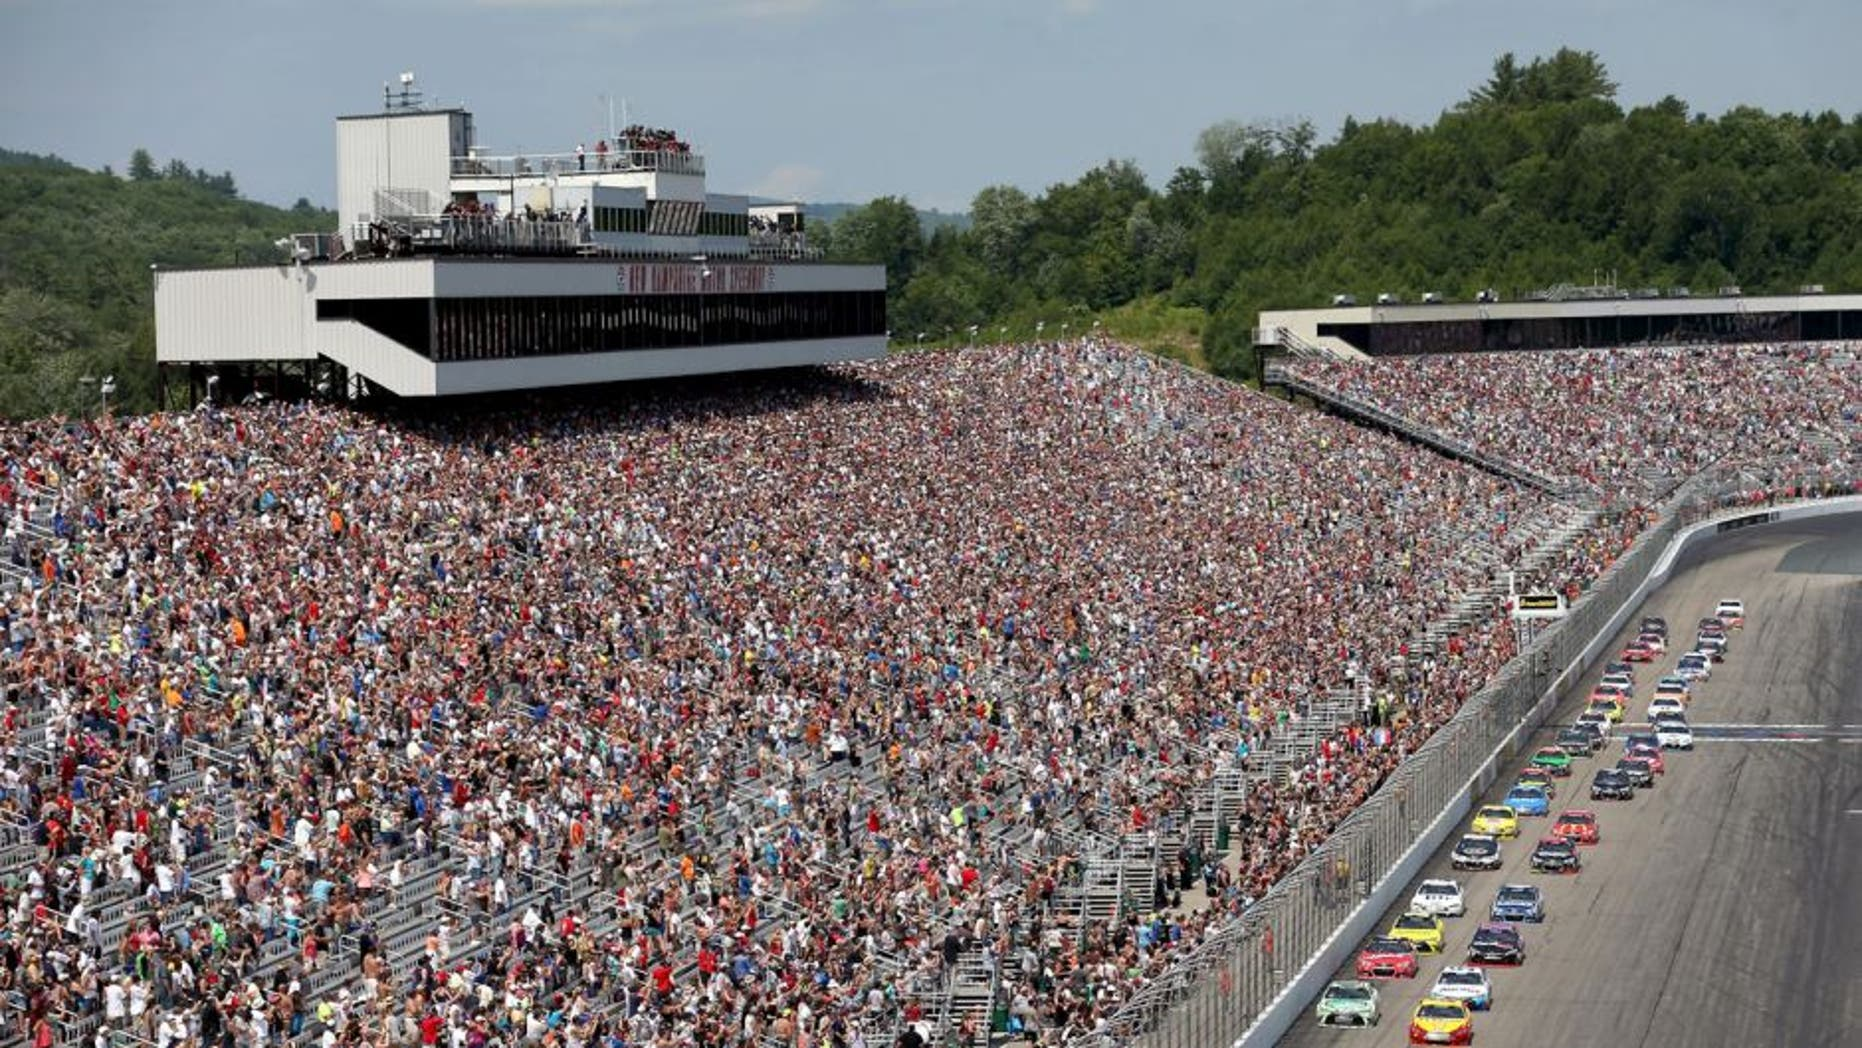 LOUDON, NH - JULY 19: Carl Edwards, driver of the #19 Sport Clips Toyota, leads the field to turn one after taking the green flag to start the NASCAR Sprint Cup Series 5-Hour ENERGY 301 at New Hampshire Motor Speedway on July 19, 2015 in Loudon, New Hampshire. (Photo by Nick Laham/Getty Images)